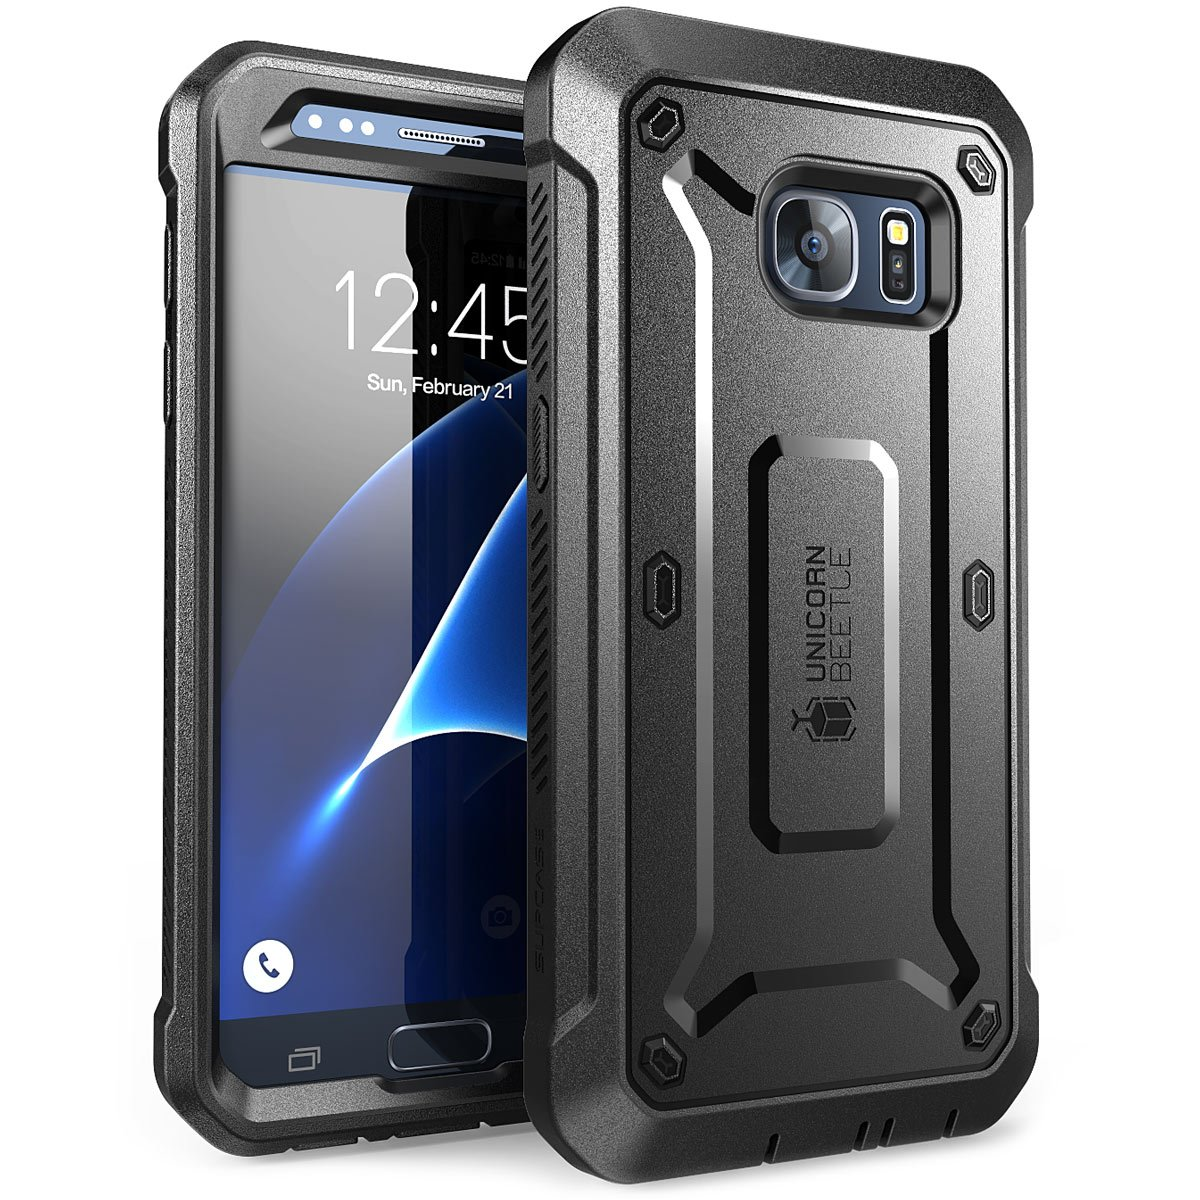 SUPCASE Unicorn Beetle Pro Series Case Designed for Galaxy S7, with Built-In Screen Protector Full-body Rugged Holster Case for Samsung Galaxy S7 (2016 Release) (Black/Black) by SupCase